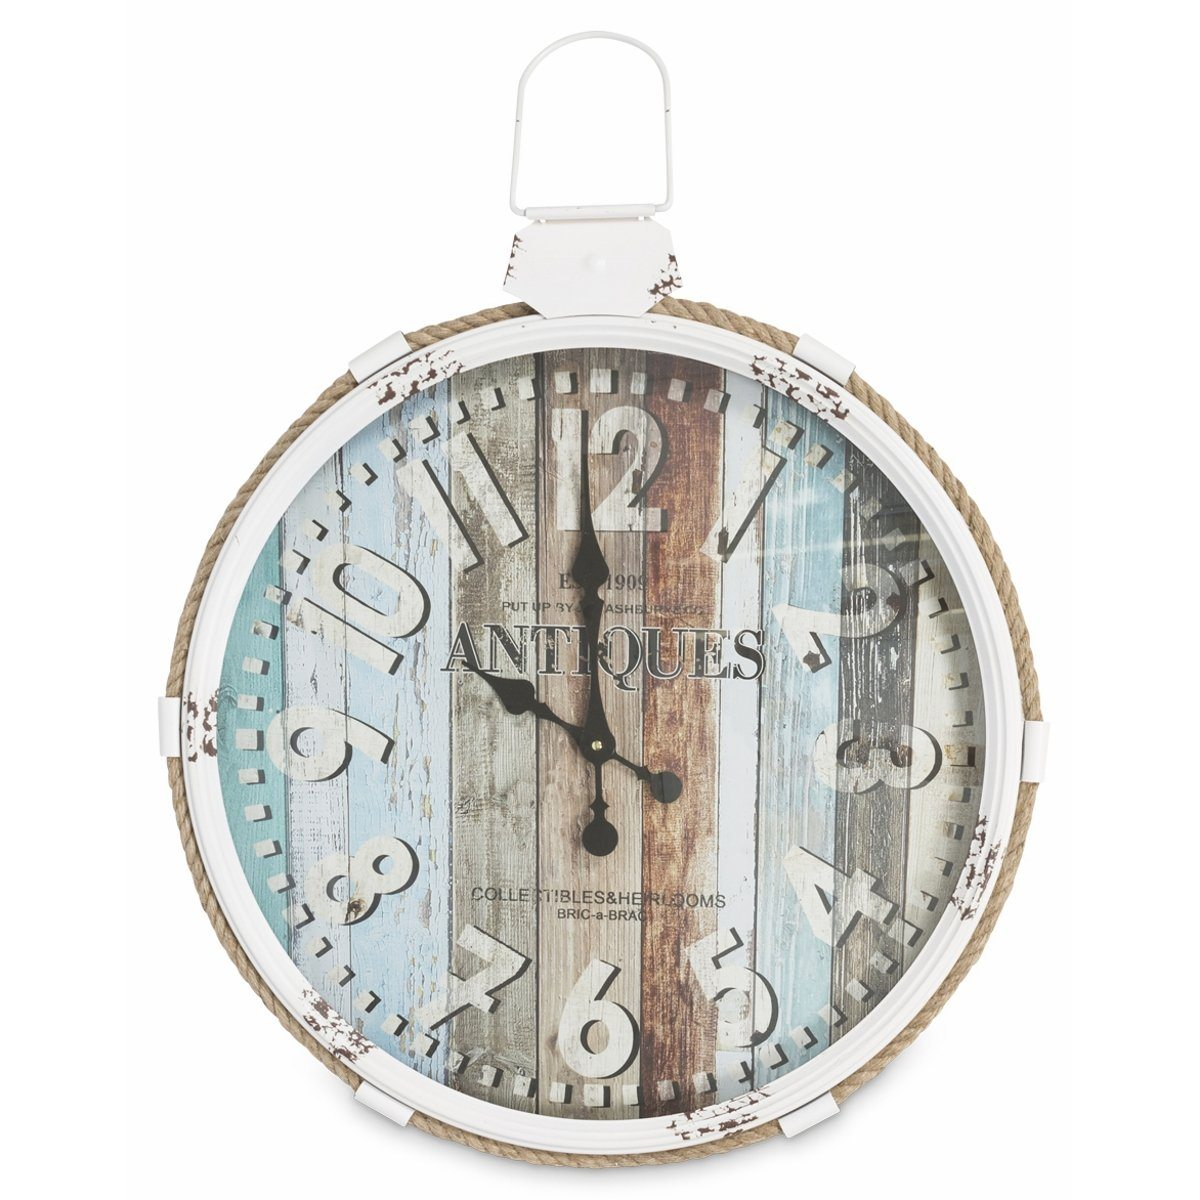 Casa Uno Hamptons Iron FOB Wall Clock, 69cm